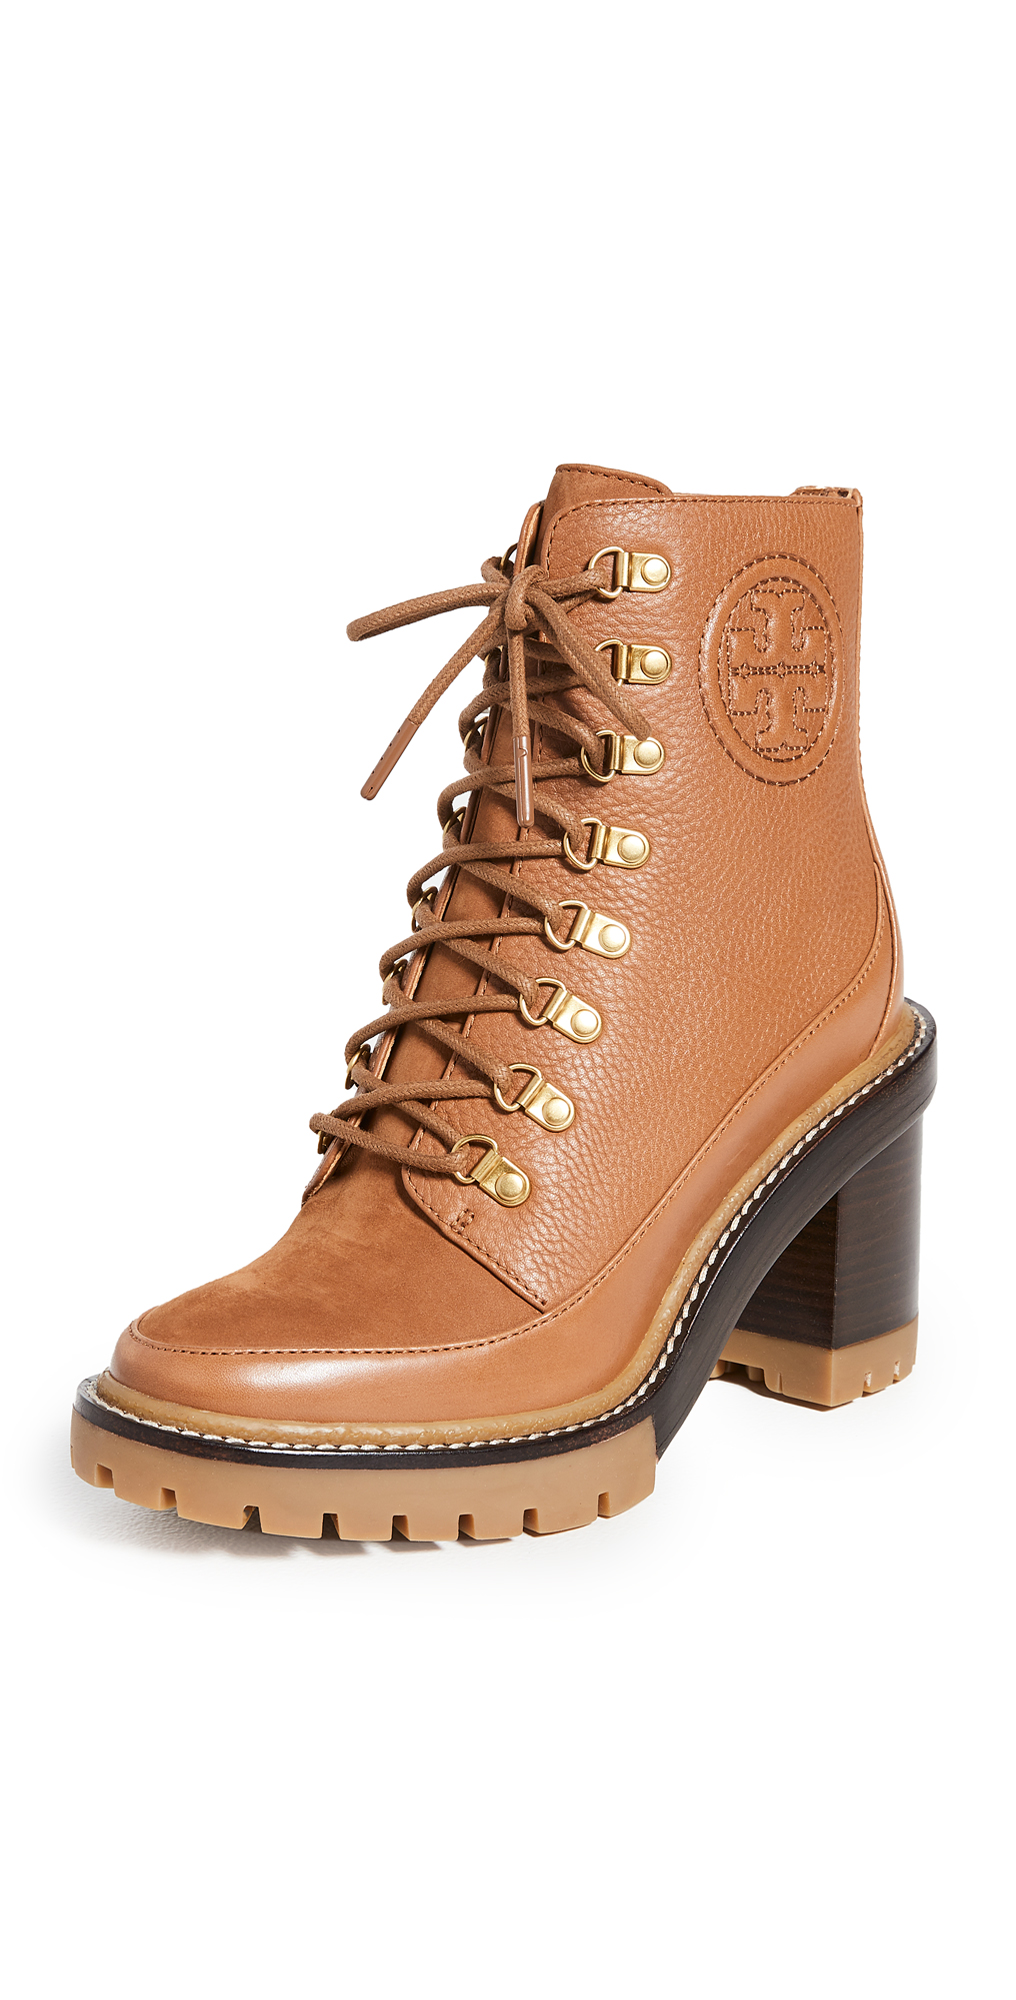 Tory Burch Miller 90mm Lug Sole Booties